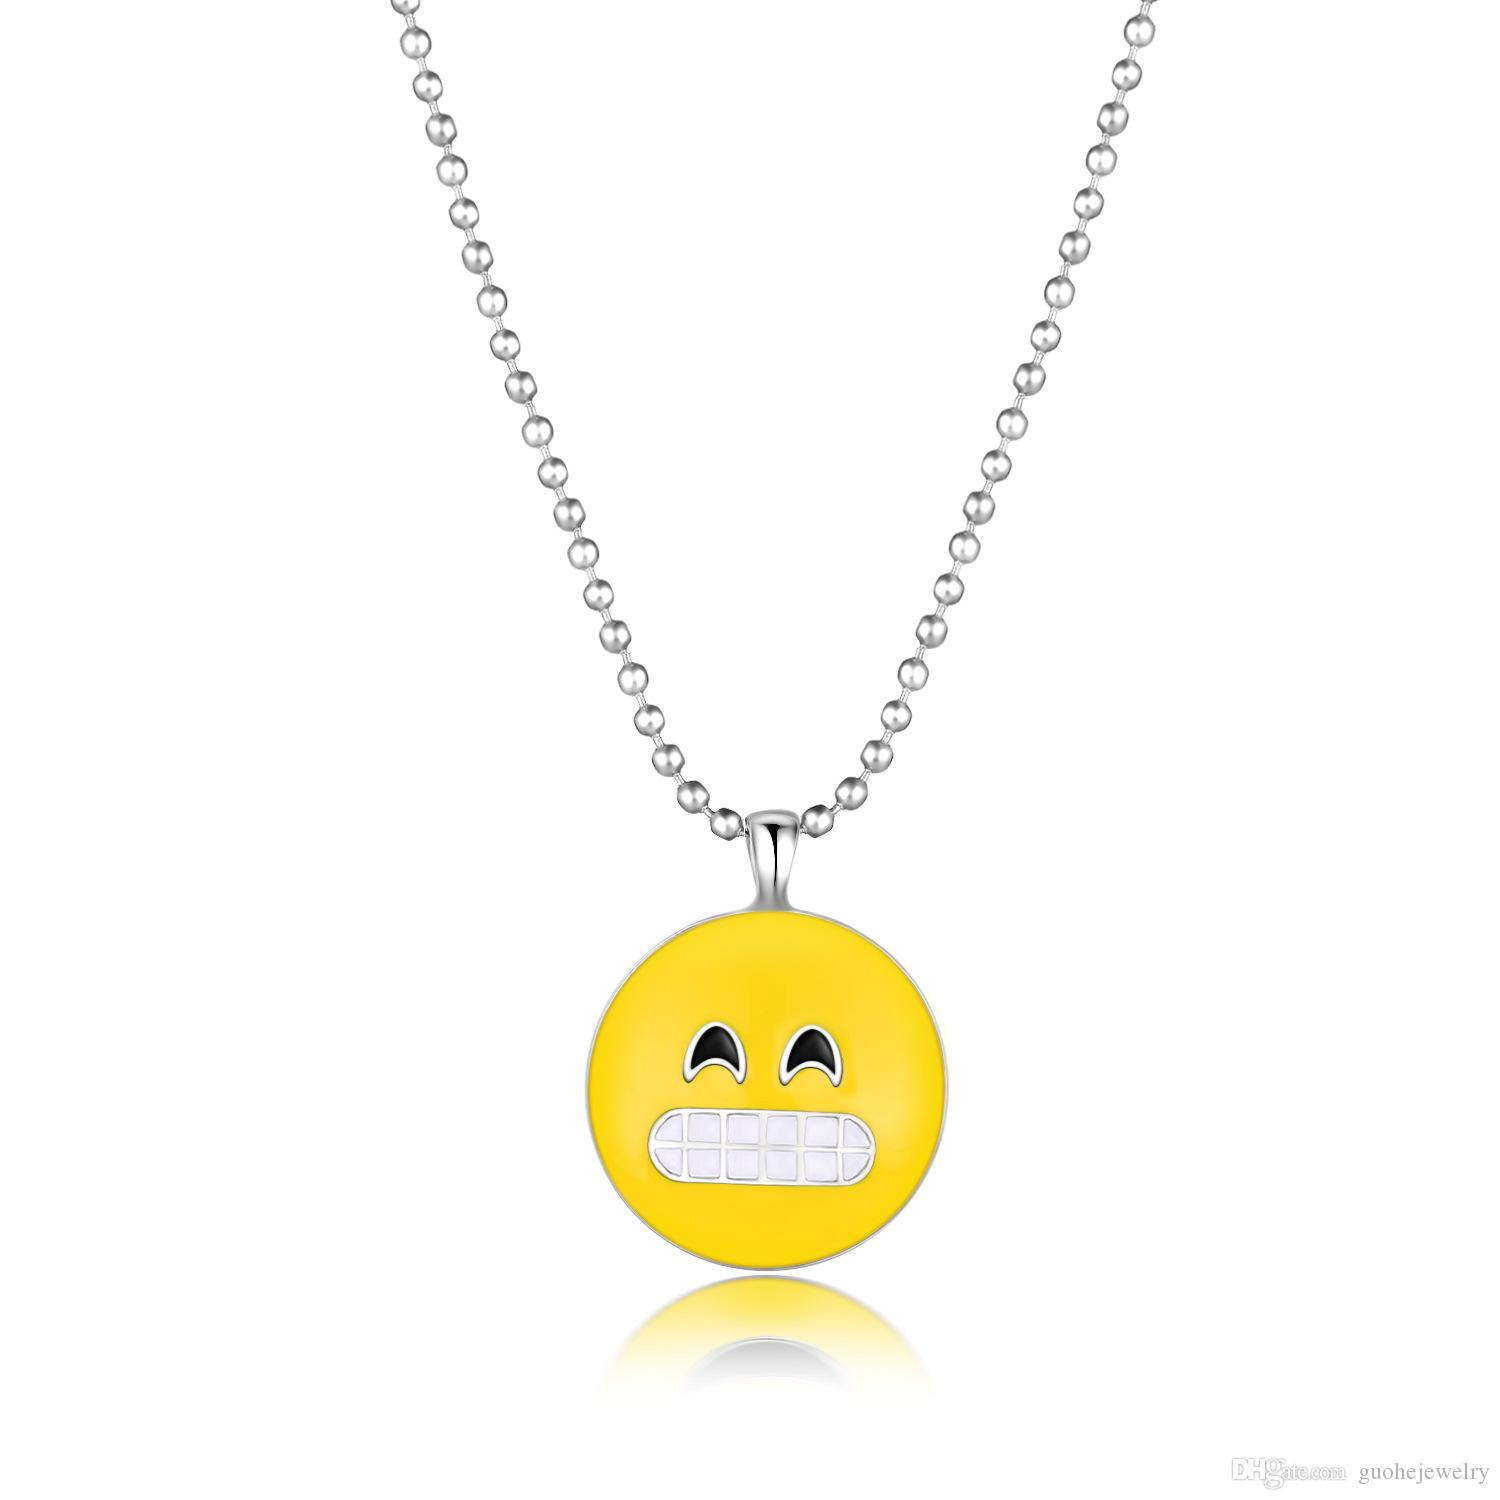 Wholesale good quality silver pendant necklace creative expression wholesale good quality silver pendant necklace creative expression emoji necklace christmas cute smiley face necklace ruby pendant necklace star pendant aloadofball Choice Image